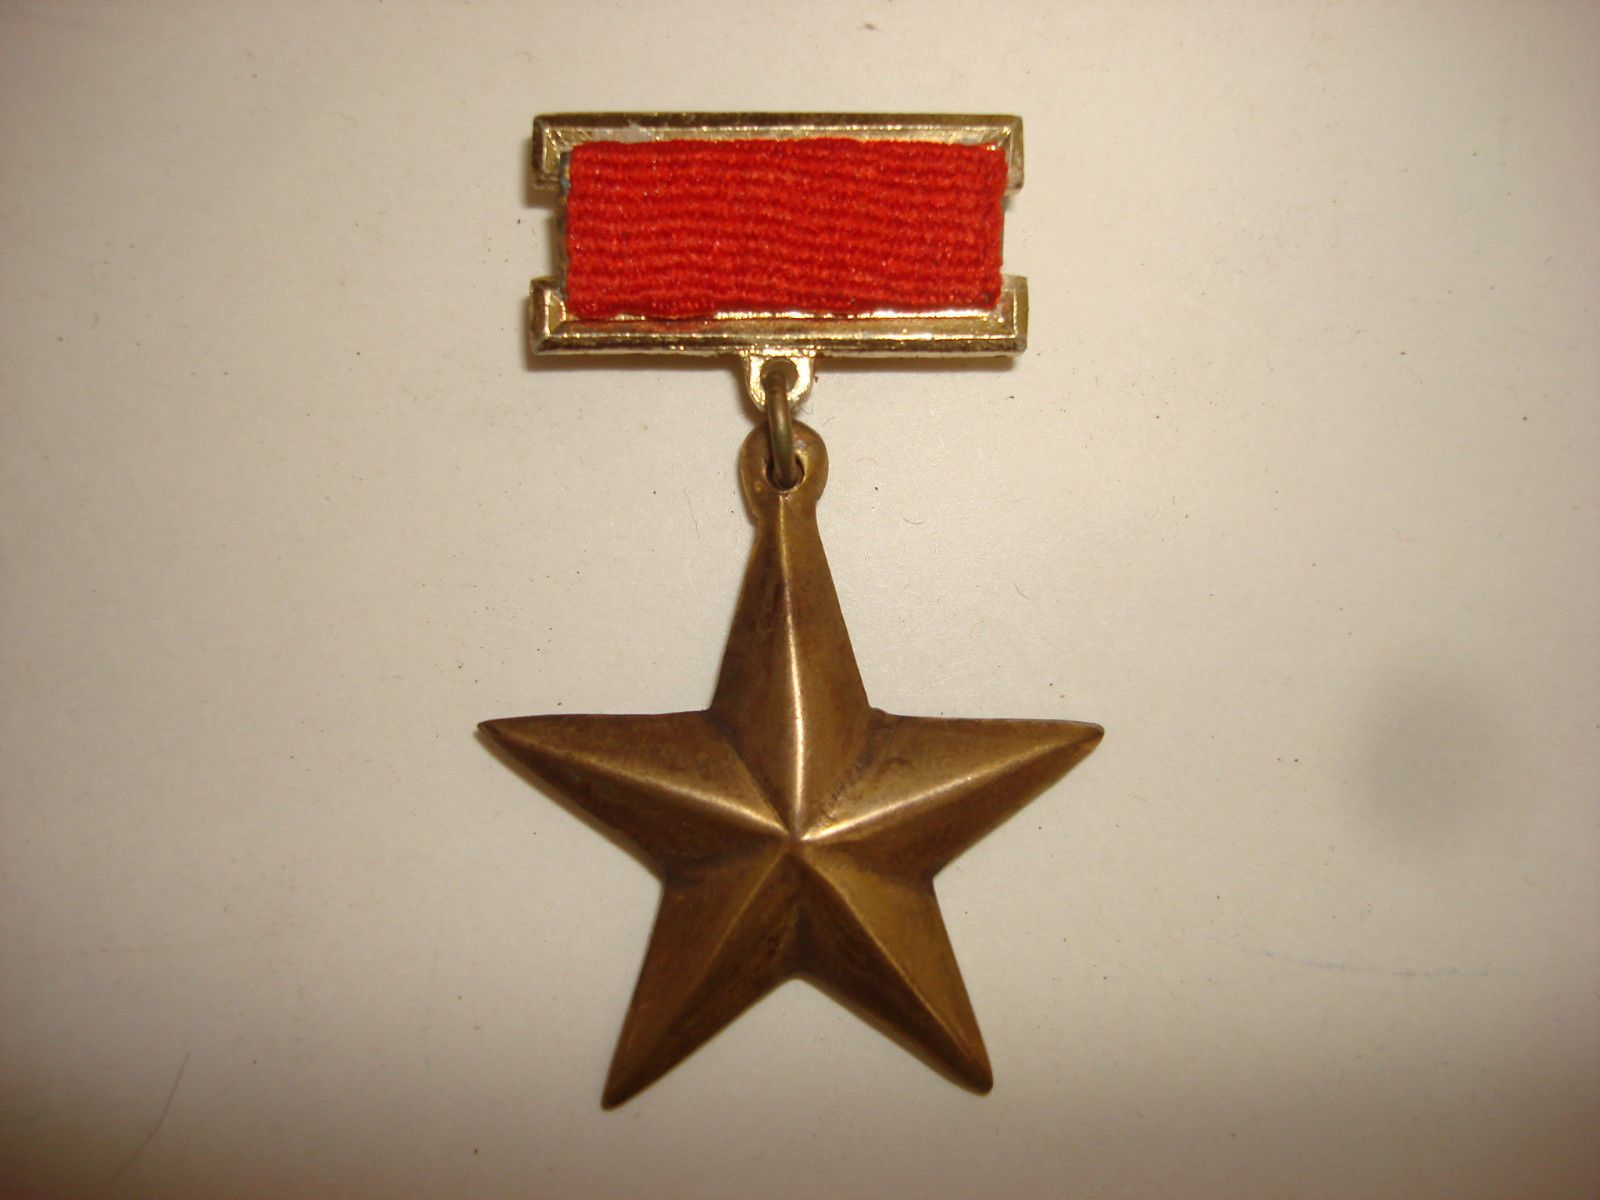 Pin on Orders, decorations, and medals